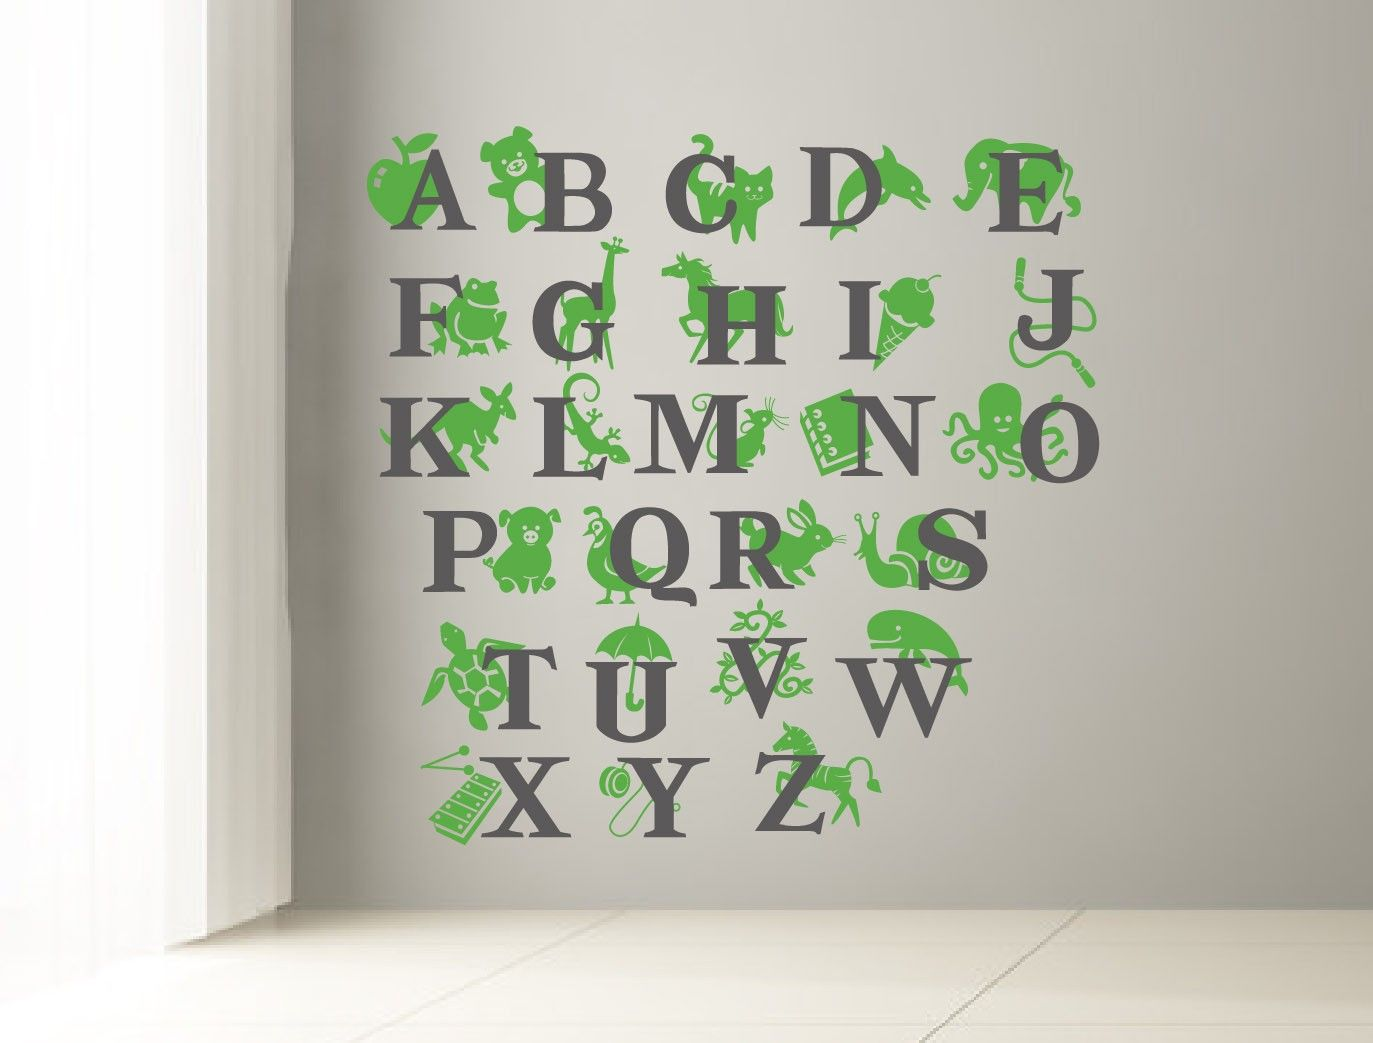 ABC Wall Decal. Alphabet Decal For Kids Room. Letters And Animals Decal  Sticker For